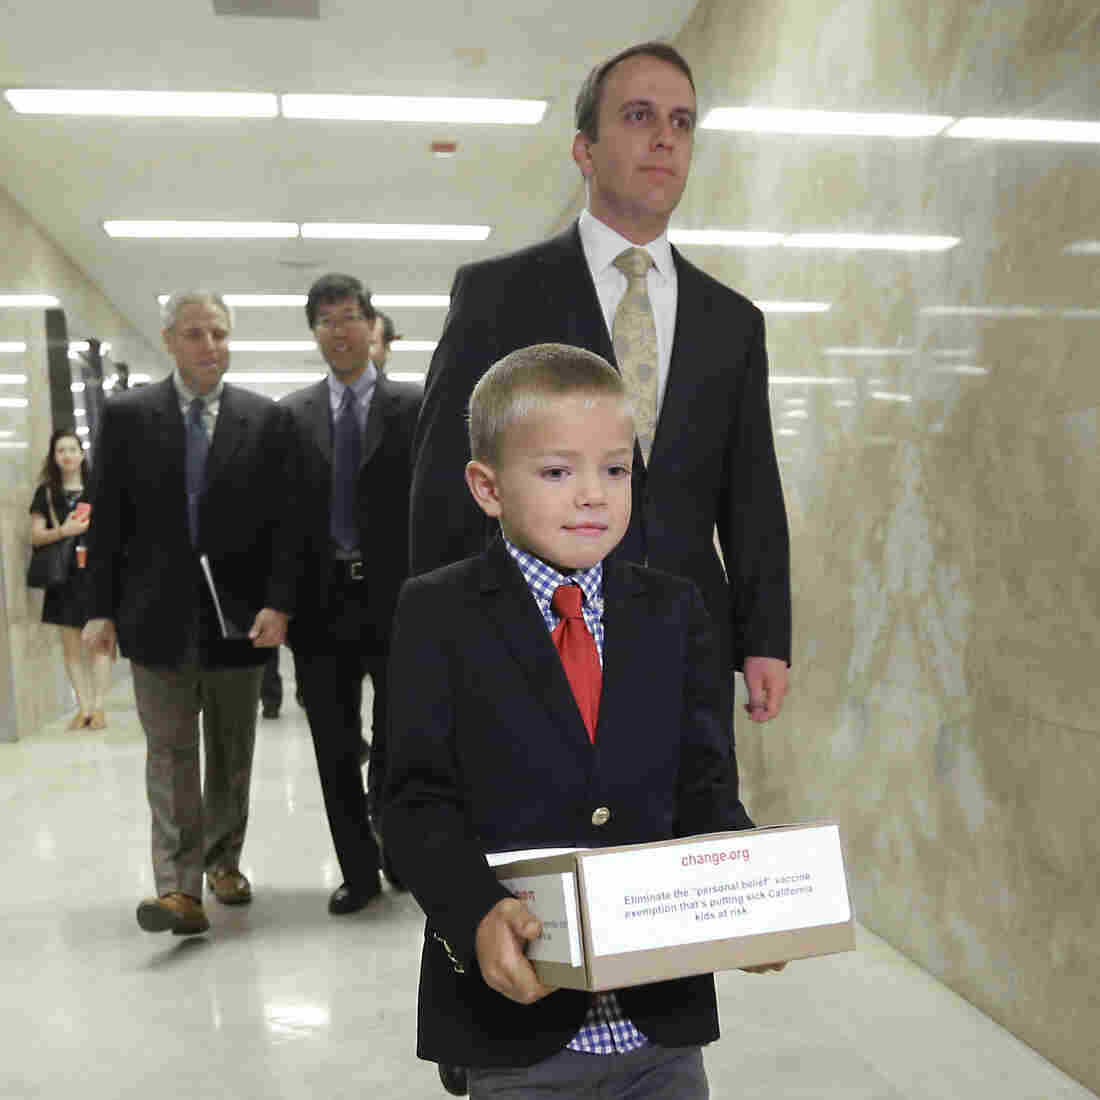 """Leukemia survivor Rhett Krawitt, 7, carries a box of petitions representing more than 30,000 people supporting a measure requiring nearly all California schoolchildren to be vaccinated. He took them to the governor's office at the Capitol in Sacramento, Calif., on Wednesday. The state Assembly voted Thursday to remove so-called """"personal belief exemptions"""" for immunizations."""